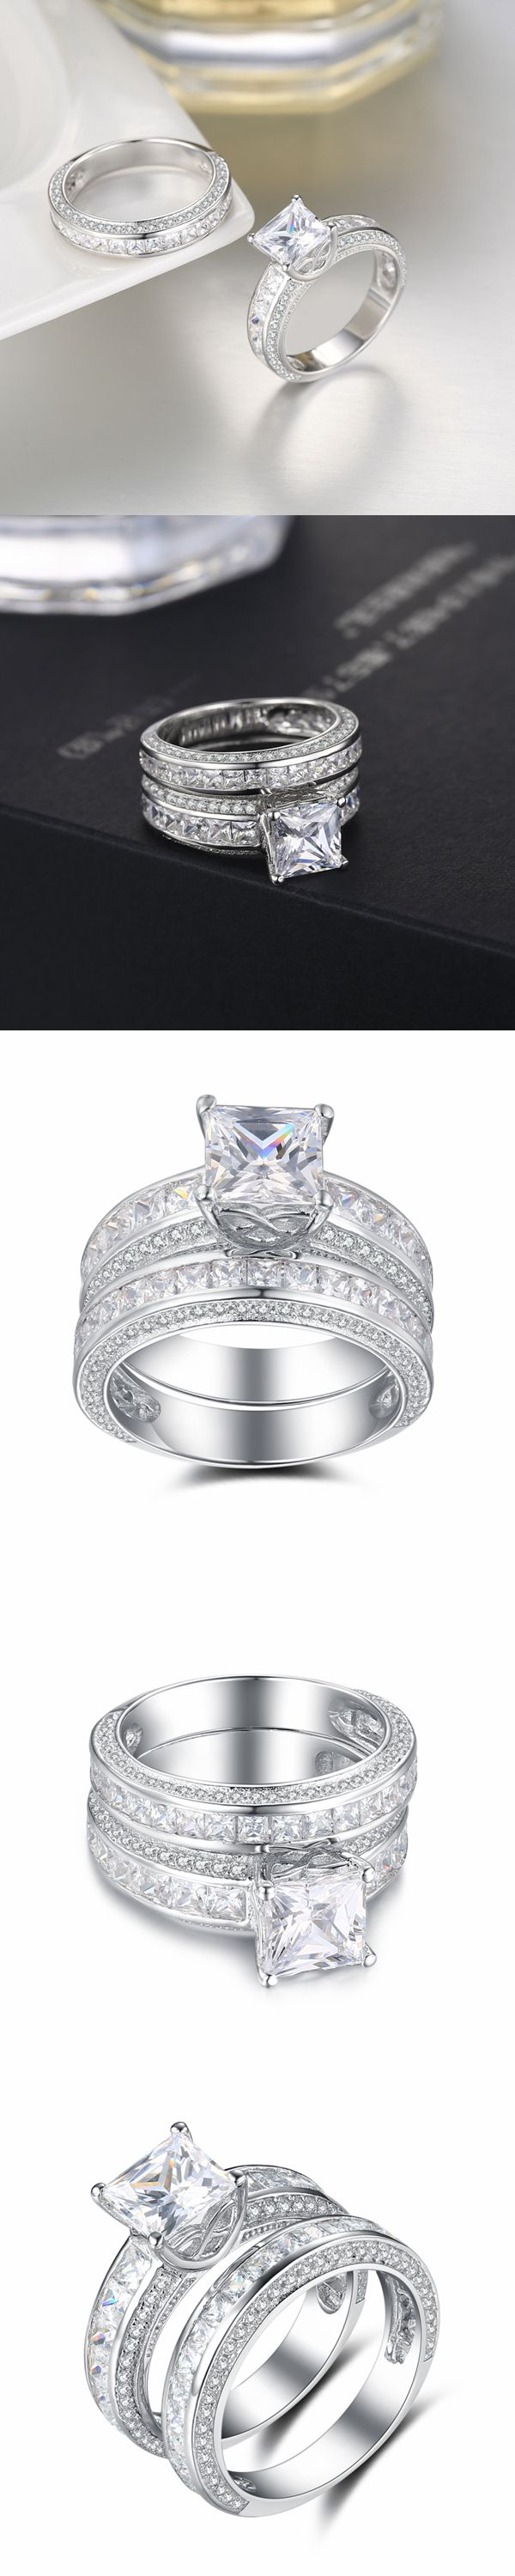 76a366435 Lajerrio Jewelry Princess Cut White Sapphire Sterling Silver Ring Sets